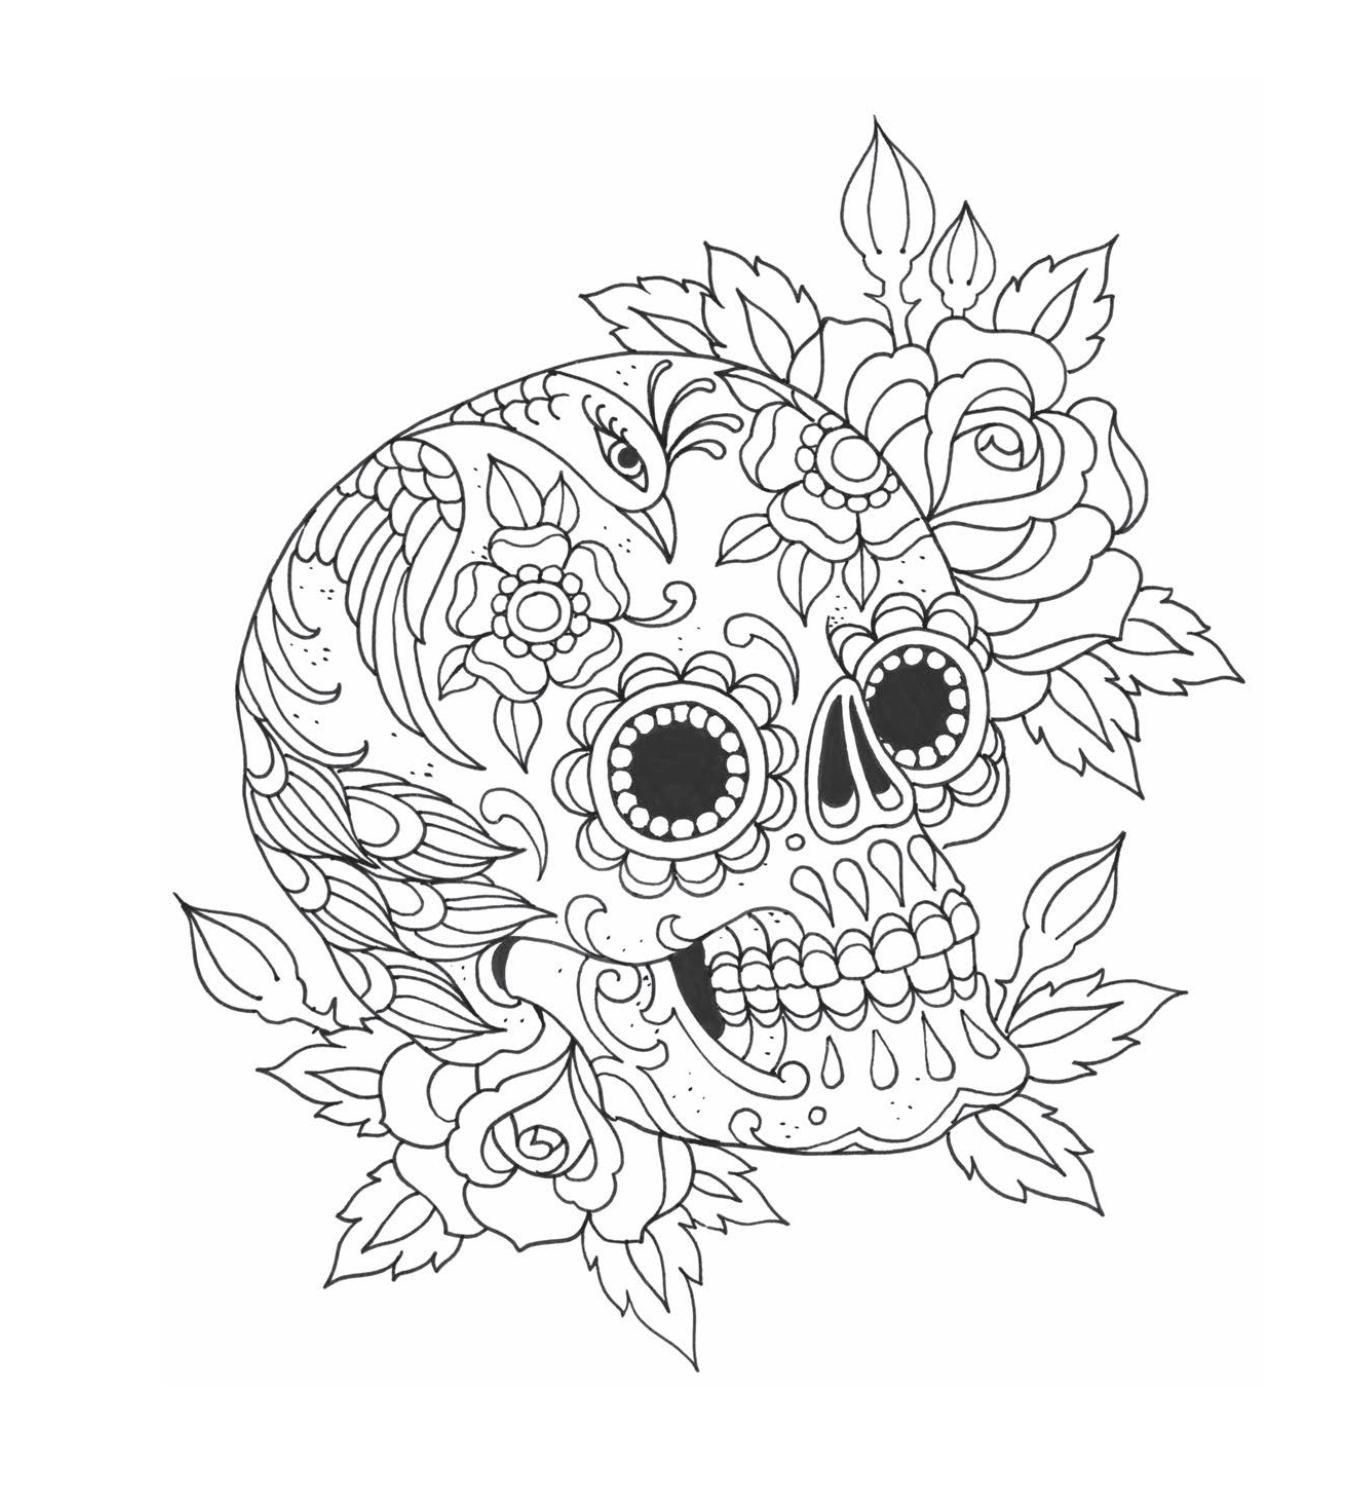 Flash Coloring pages, Floral skull, Day of the dead skull